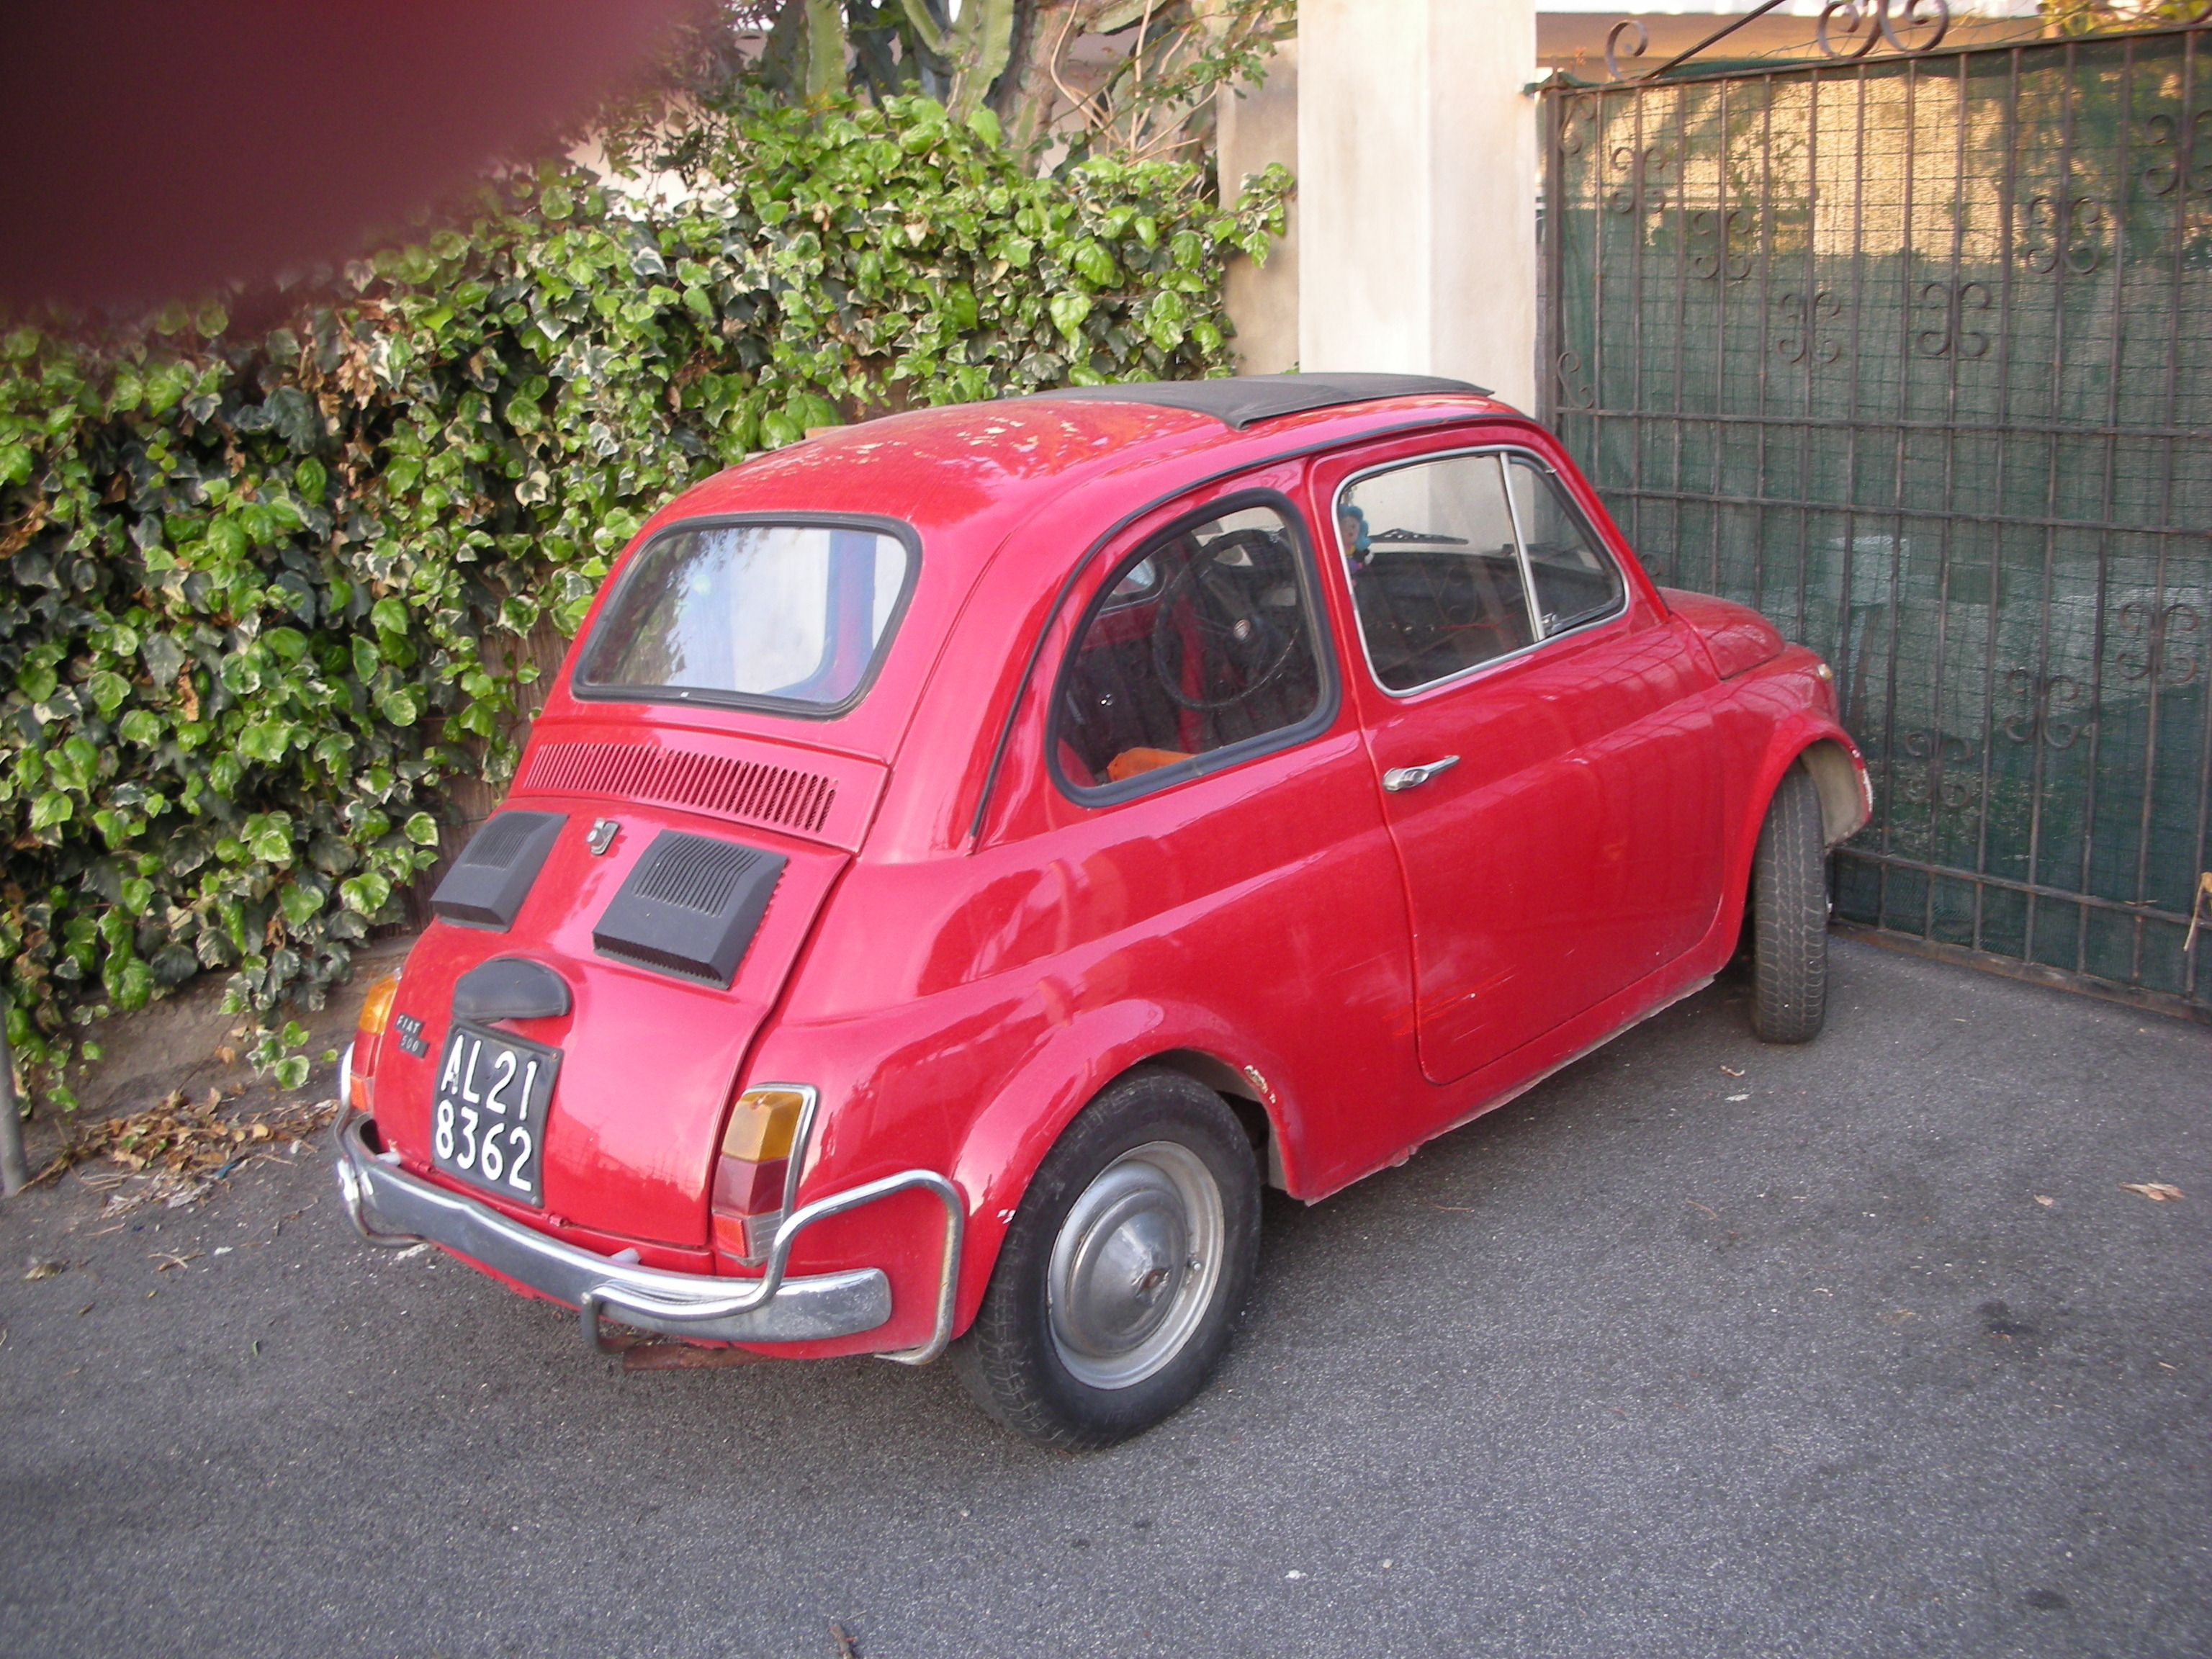 Italian cars are just as charming as their owners  Check out this